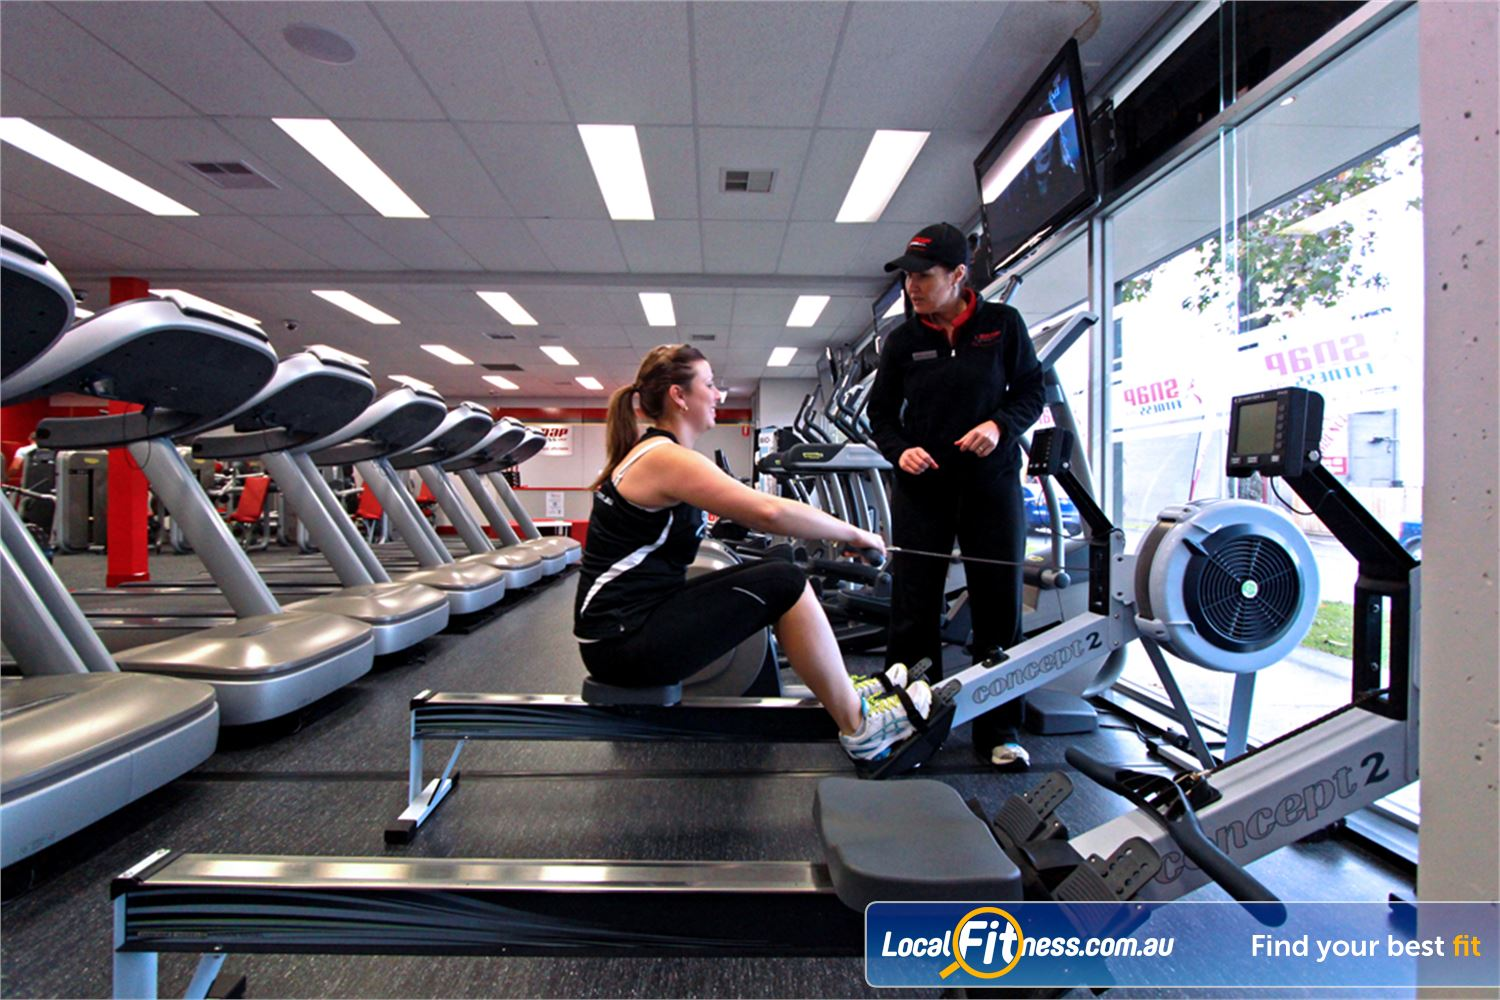 Snap Fitness Croydon Croydon personal training can help you reach your cardio and weight loss goals.